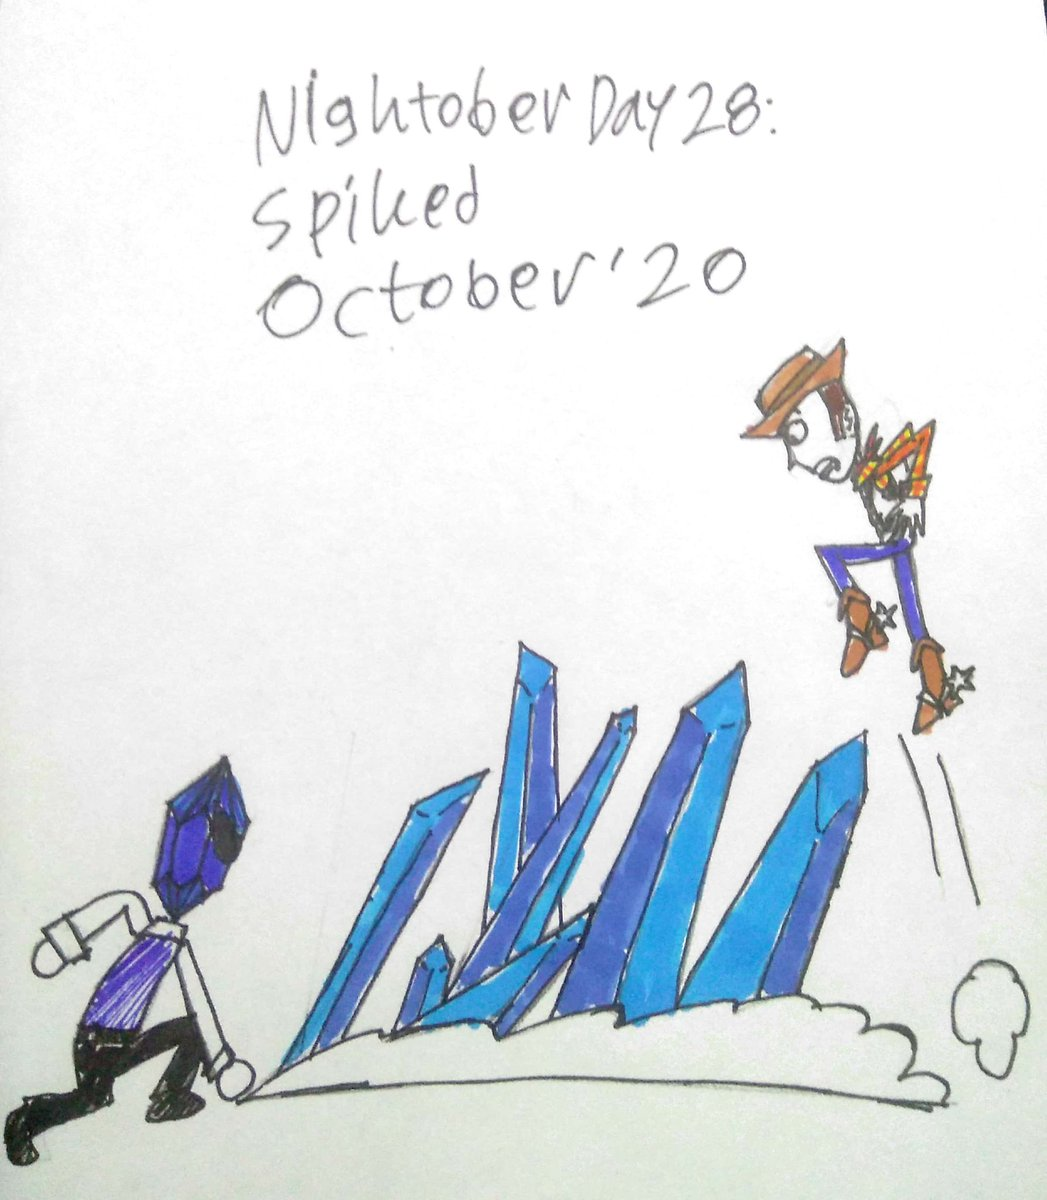 While Woody fighting Sapphire Man, even Sapphire Man can use Sapphire Spike Attack. #toystory #toystoryau #toystoryfanart #toystoryoc #toystorygreatseries #toystorywoody #inktober #inktober2020 #nightober #nightober2020 https://t.co/z15plyxA52